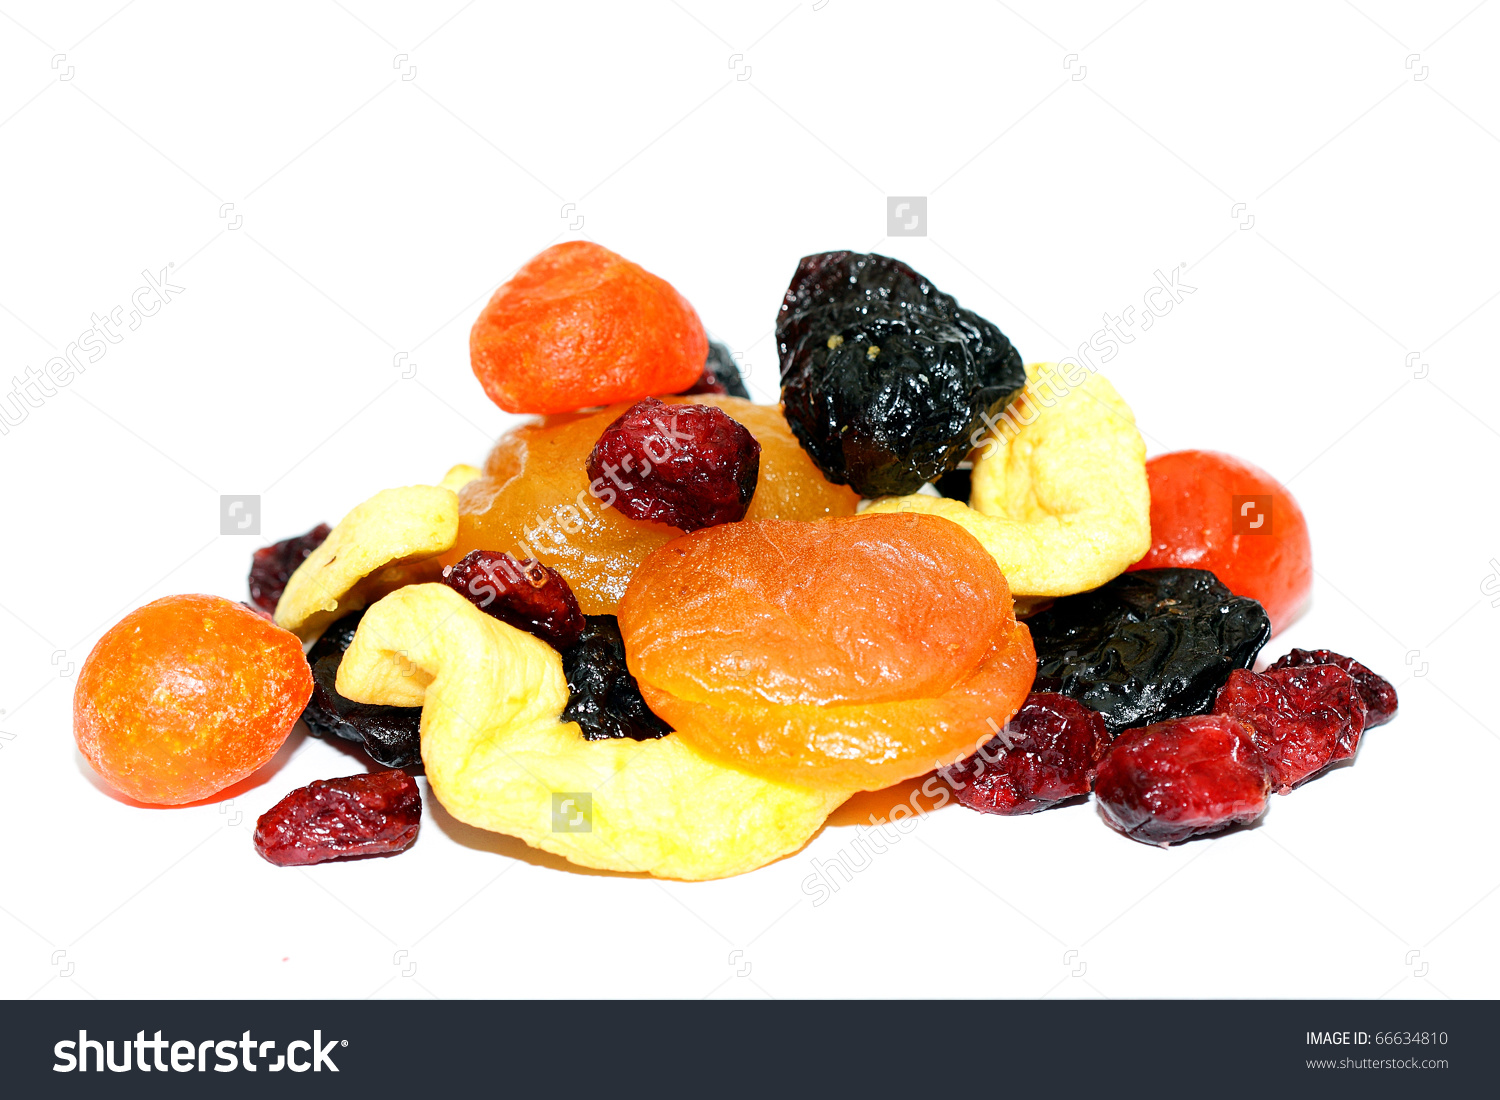 Mixed Dried Fruits Stock Photo 66634810.